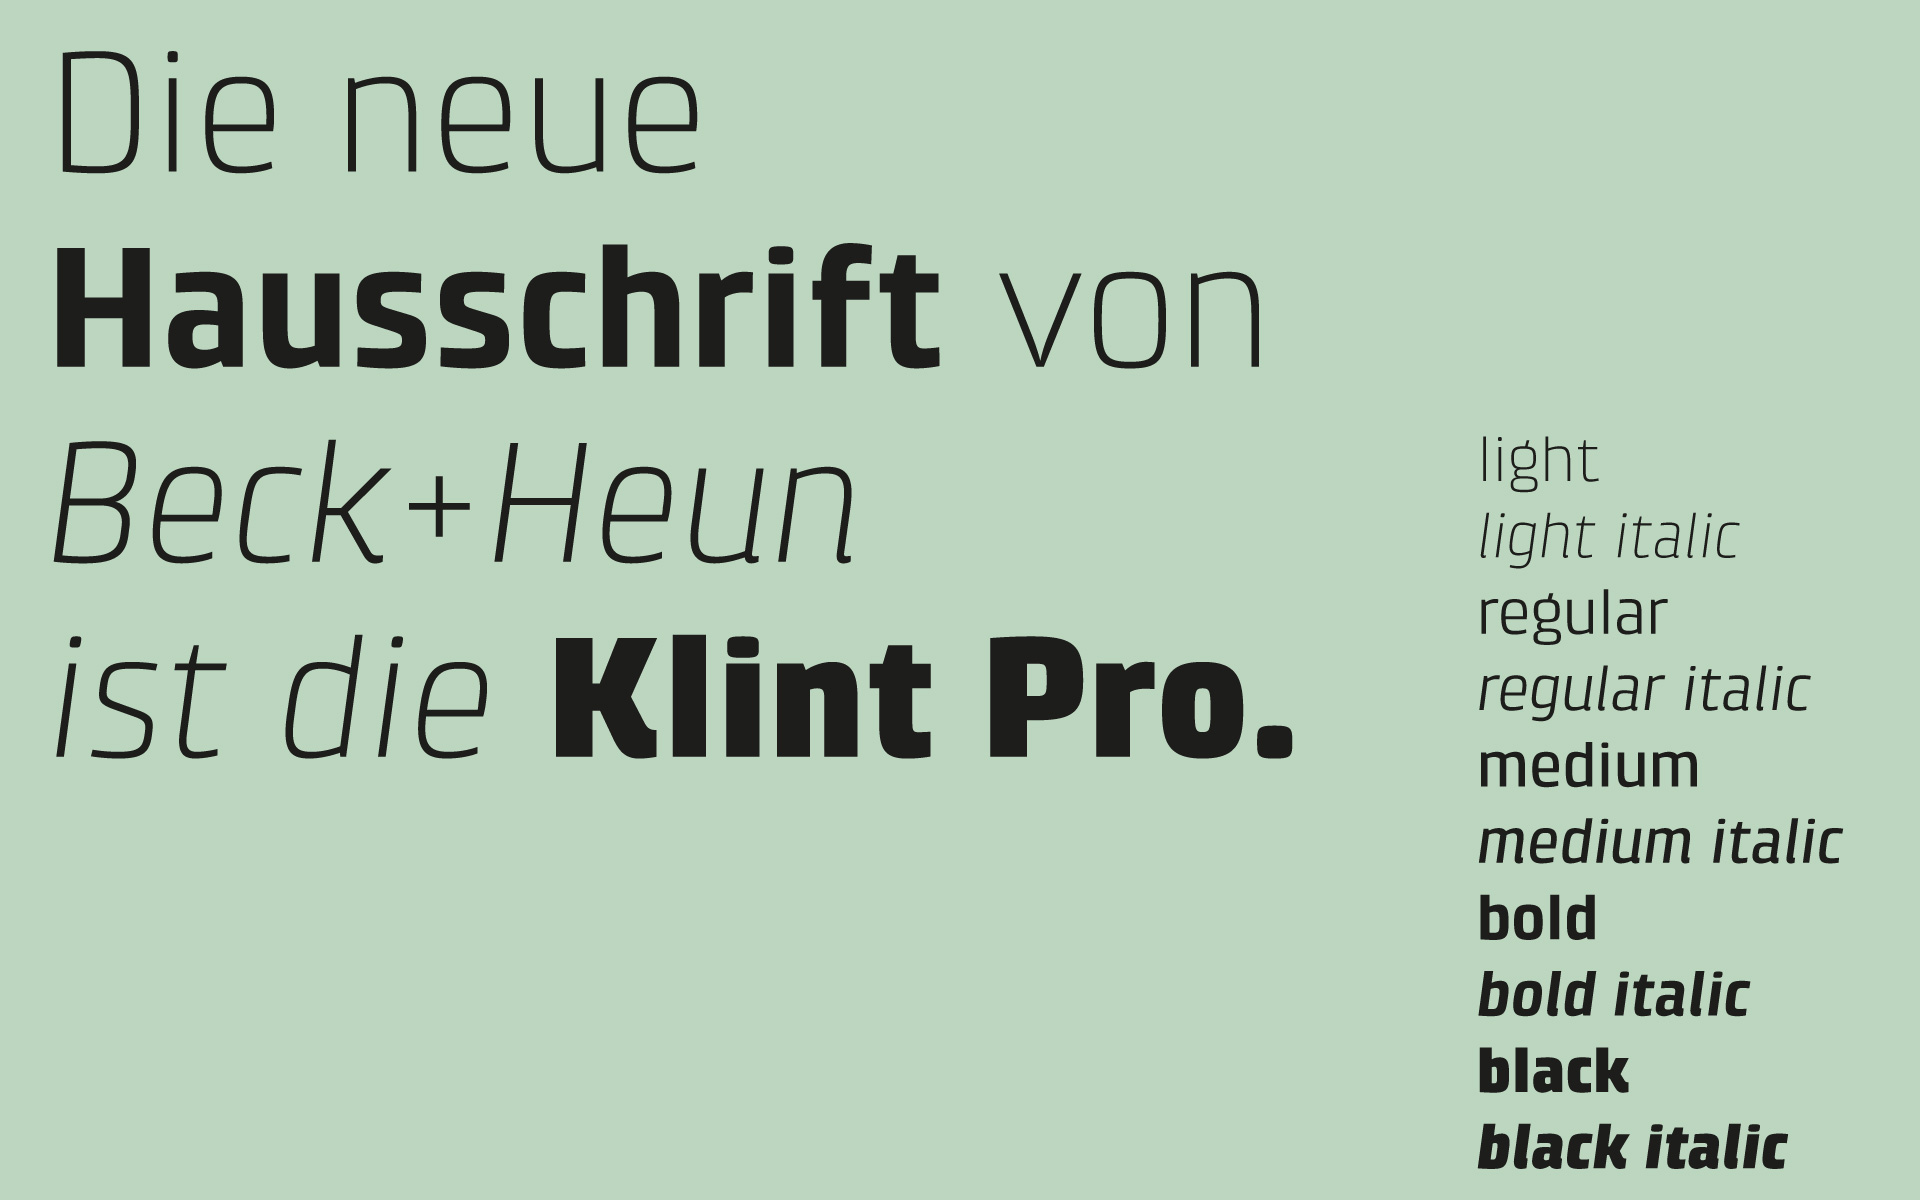 Beck+Heun Corporate Design, Markenkommunikation, Corporate Typeface